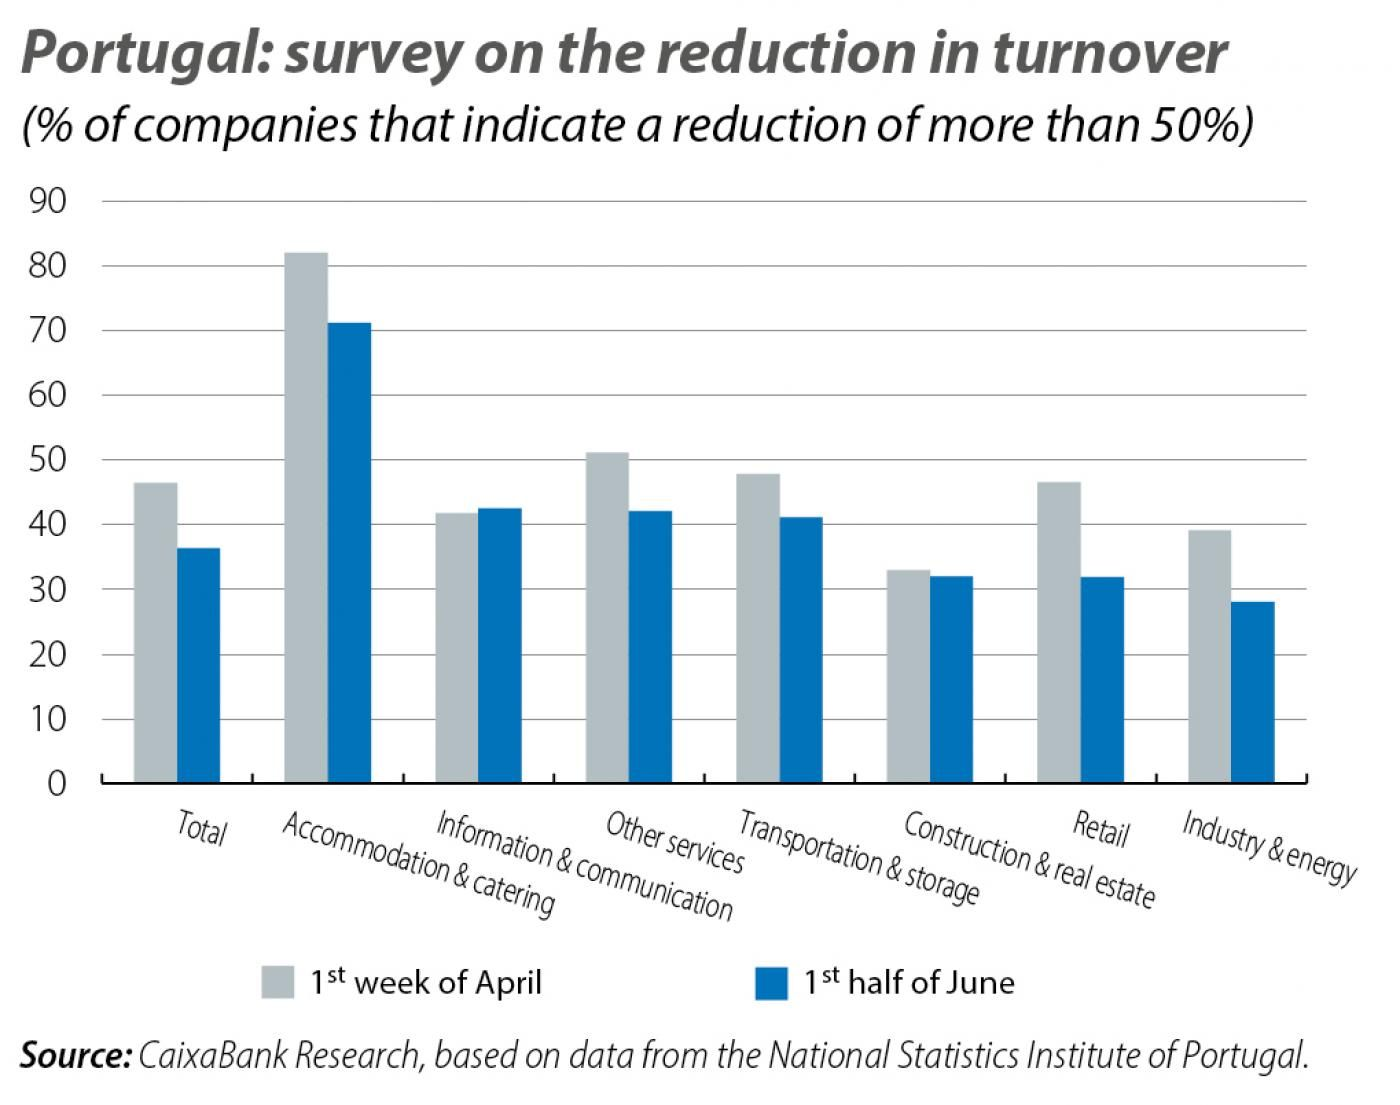 Portugal: survey on the red uction in turnover